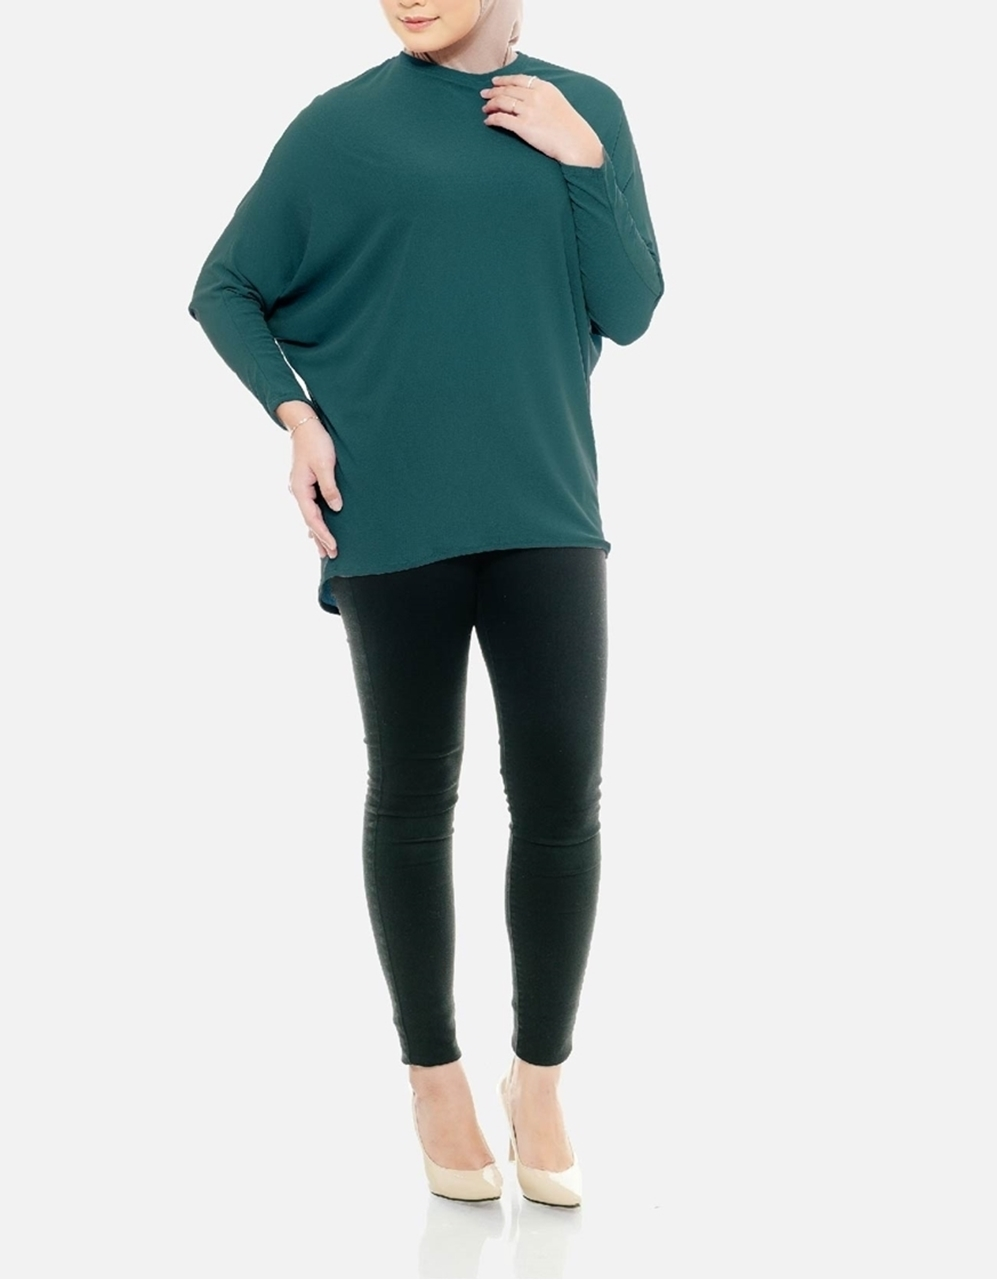 Picture of Sofea Batwing Blouse in Spruce Green